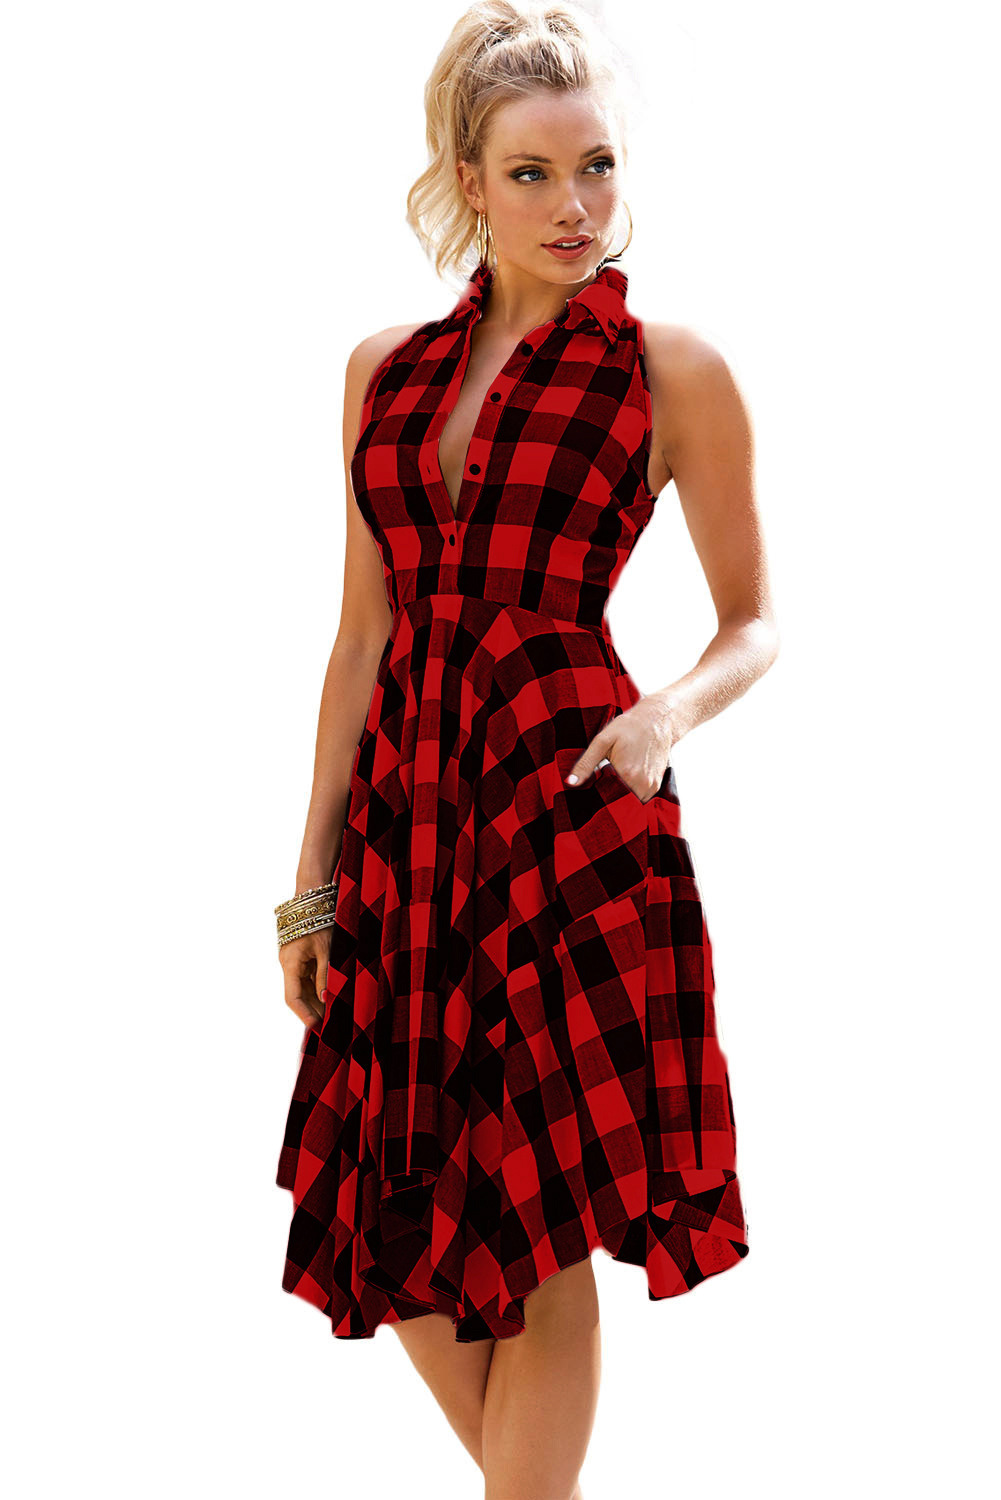 women dress 2019 fashion ladies female womens autumn classics retro elegance parties love plaid sexy clothing dresses lady in Dresses from Women 39 s Clothing